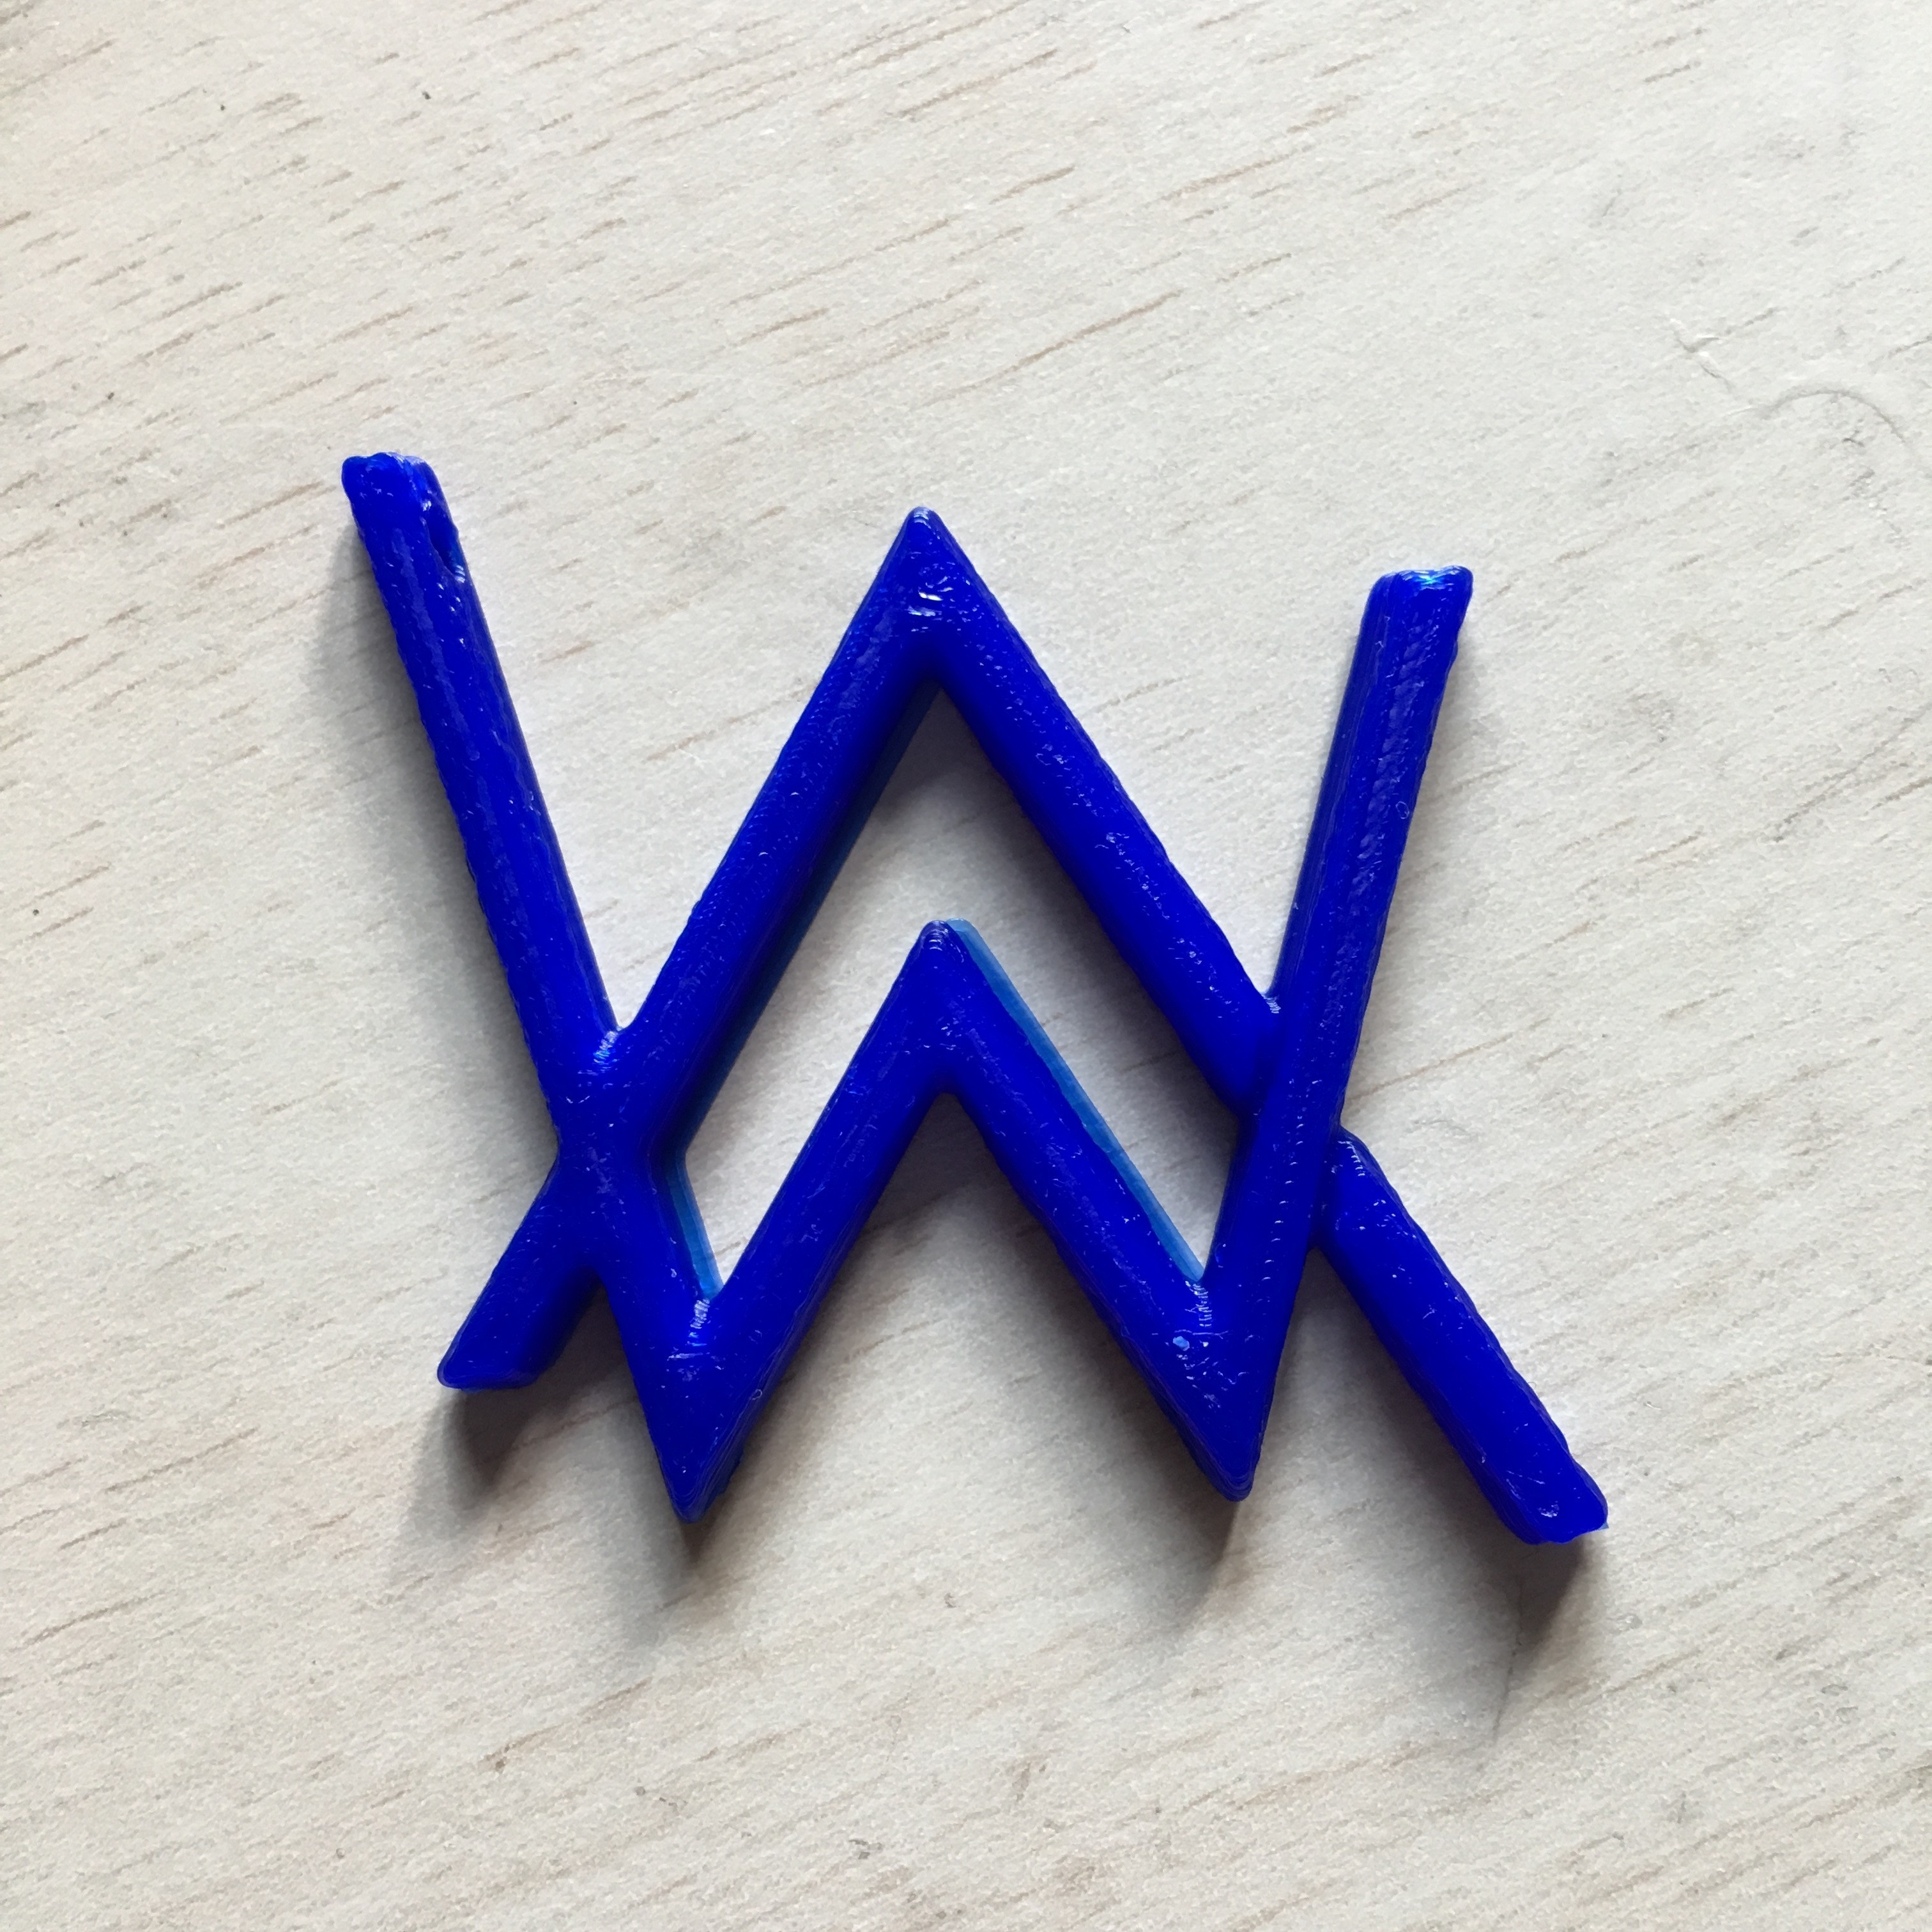 Download Free Stl File Alan Walker Logo Object To 3d Print Cults You can download in.ai,.eps,.cdr,.svg,.png formats. download free stl file alan walker logo